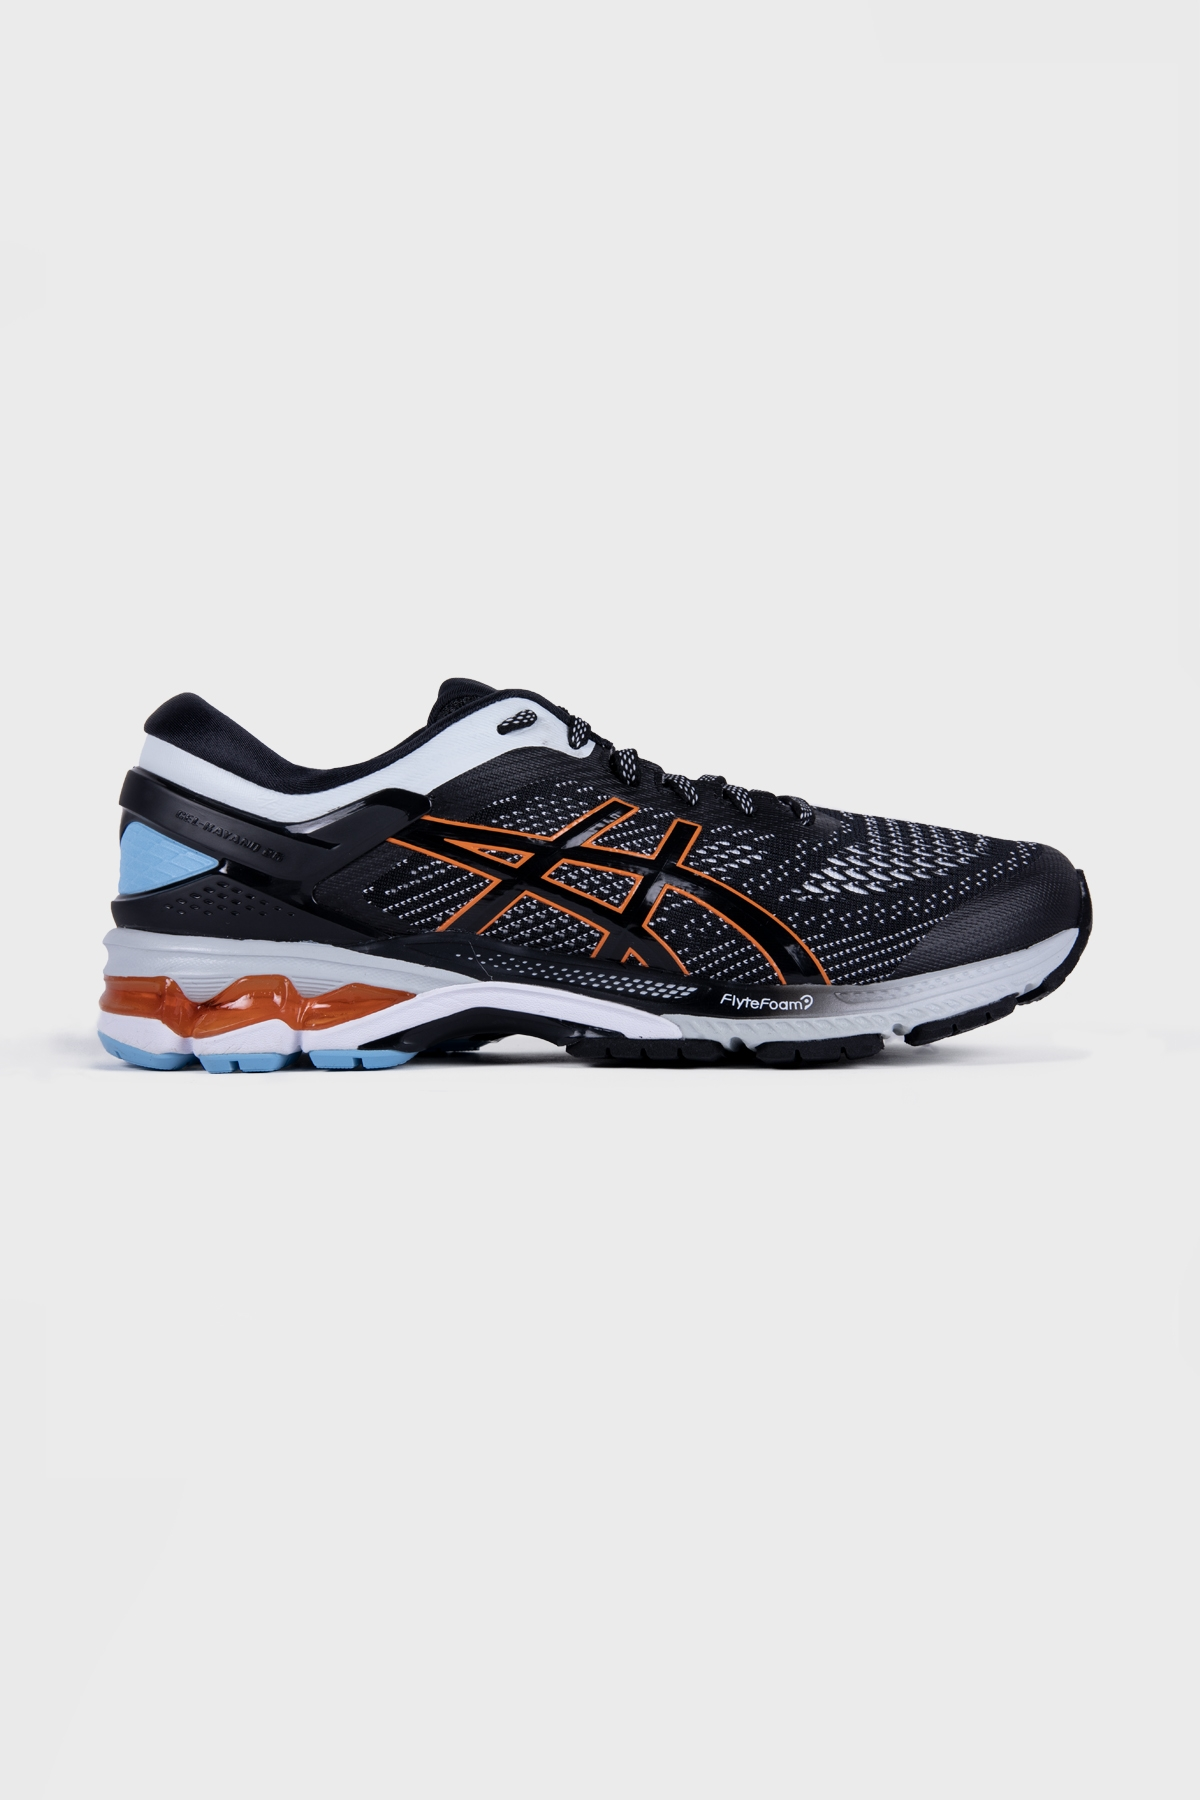 Asics - Gel Kayano 26 - BLACK POLAR SHADE